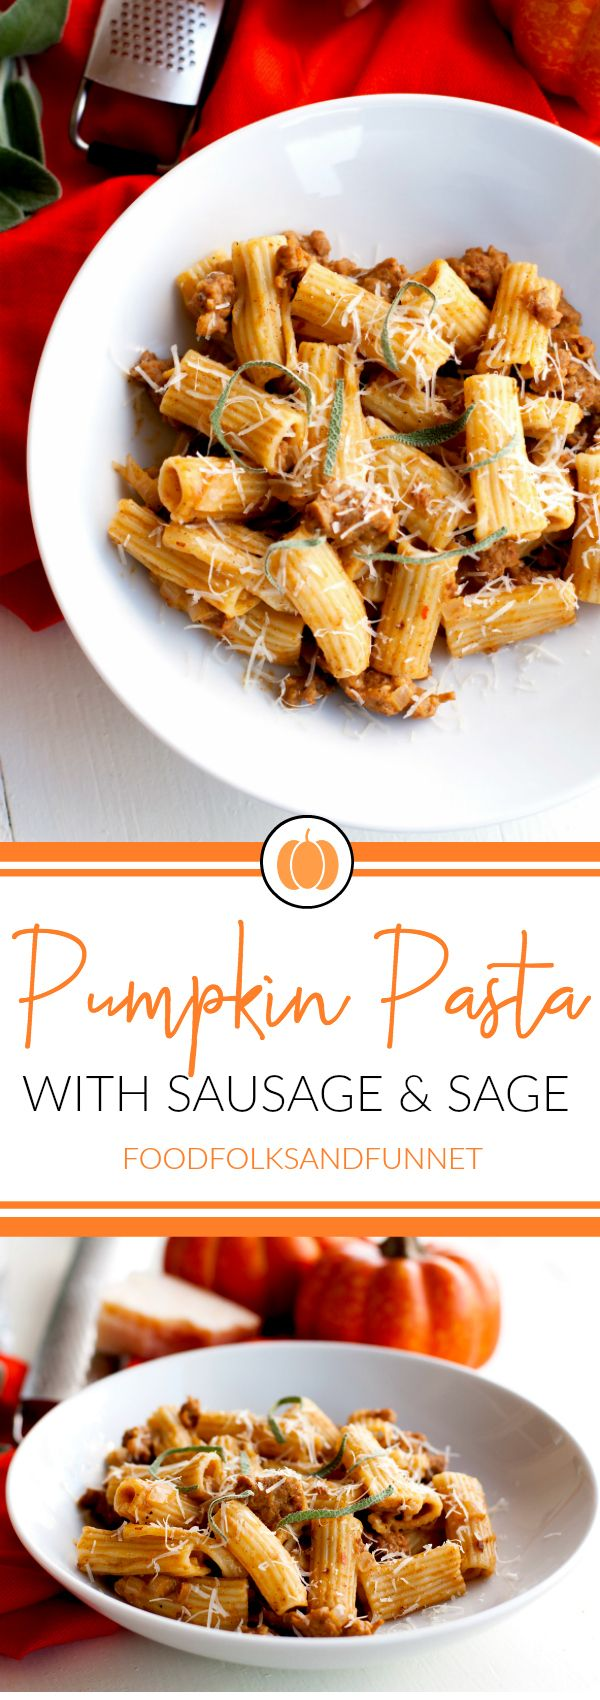 This Pumpkin Pasta with Sausage and Sage is the perfect comfort food dish for fall! It's creamy, spicy, and so flavorful. Plus it's on your table in just 25 minutes! Fall Dinner | Pumpkin Dinner |  Pumpkin Pasta Sauce